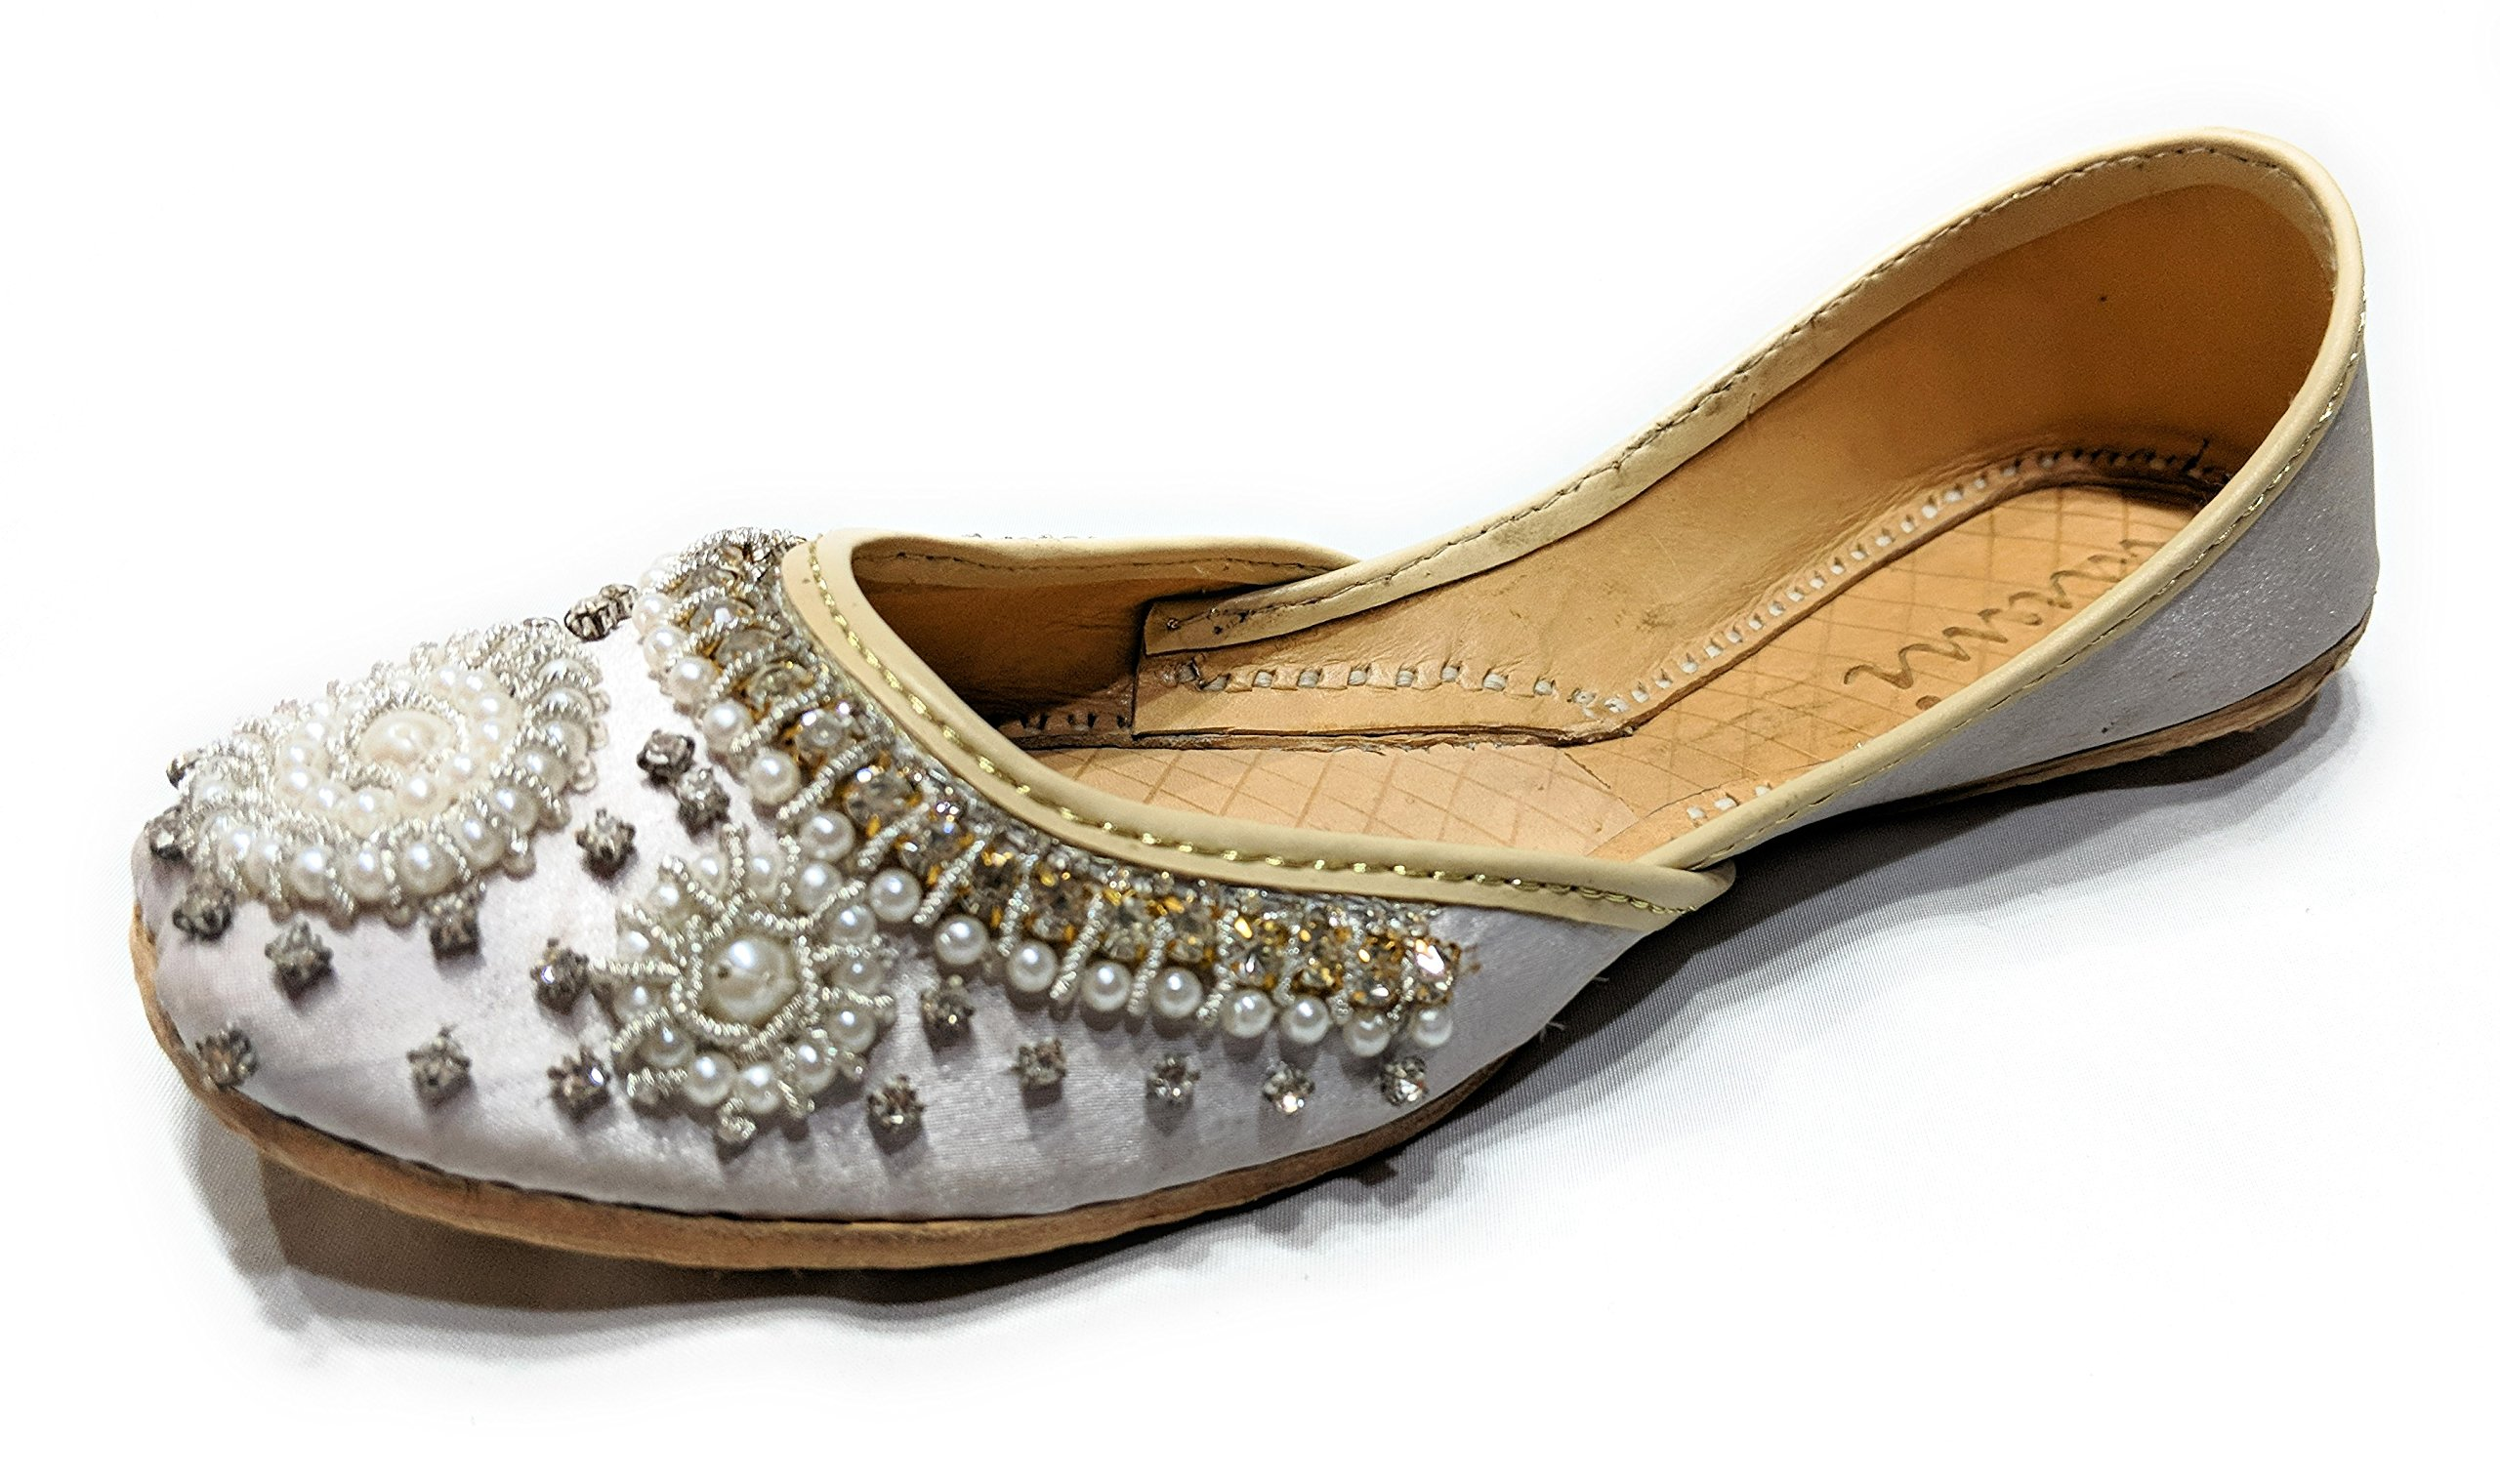 Mimi Women's Khussa Silver Special Occasion/Wedding Flat Handmade Pearl Shoes Silver 11